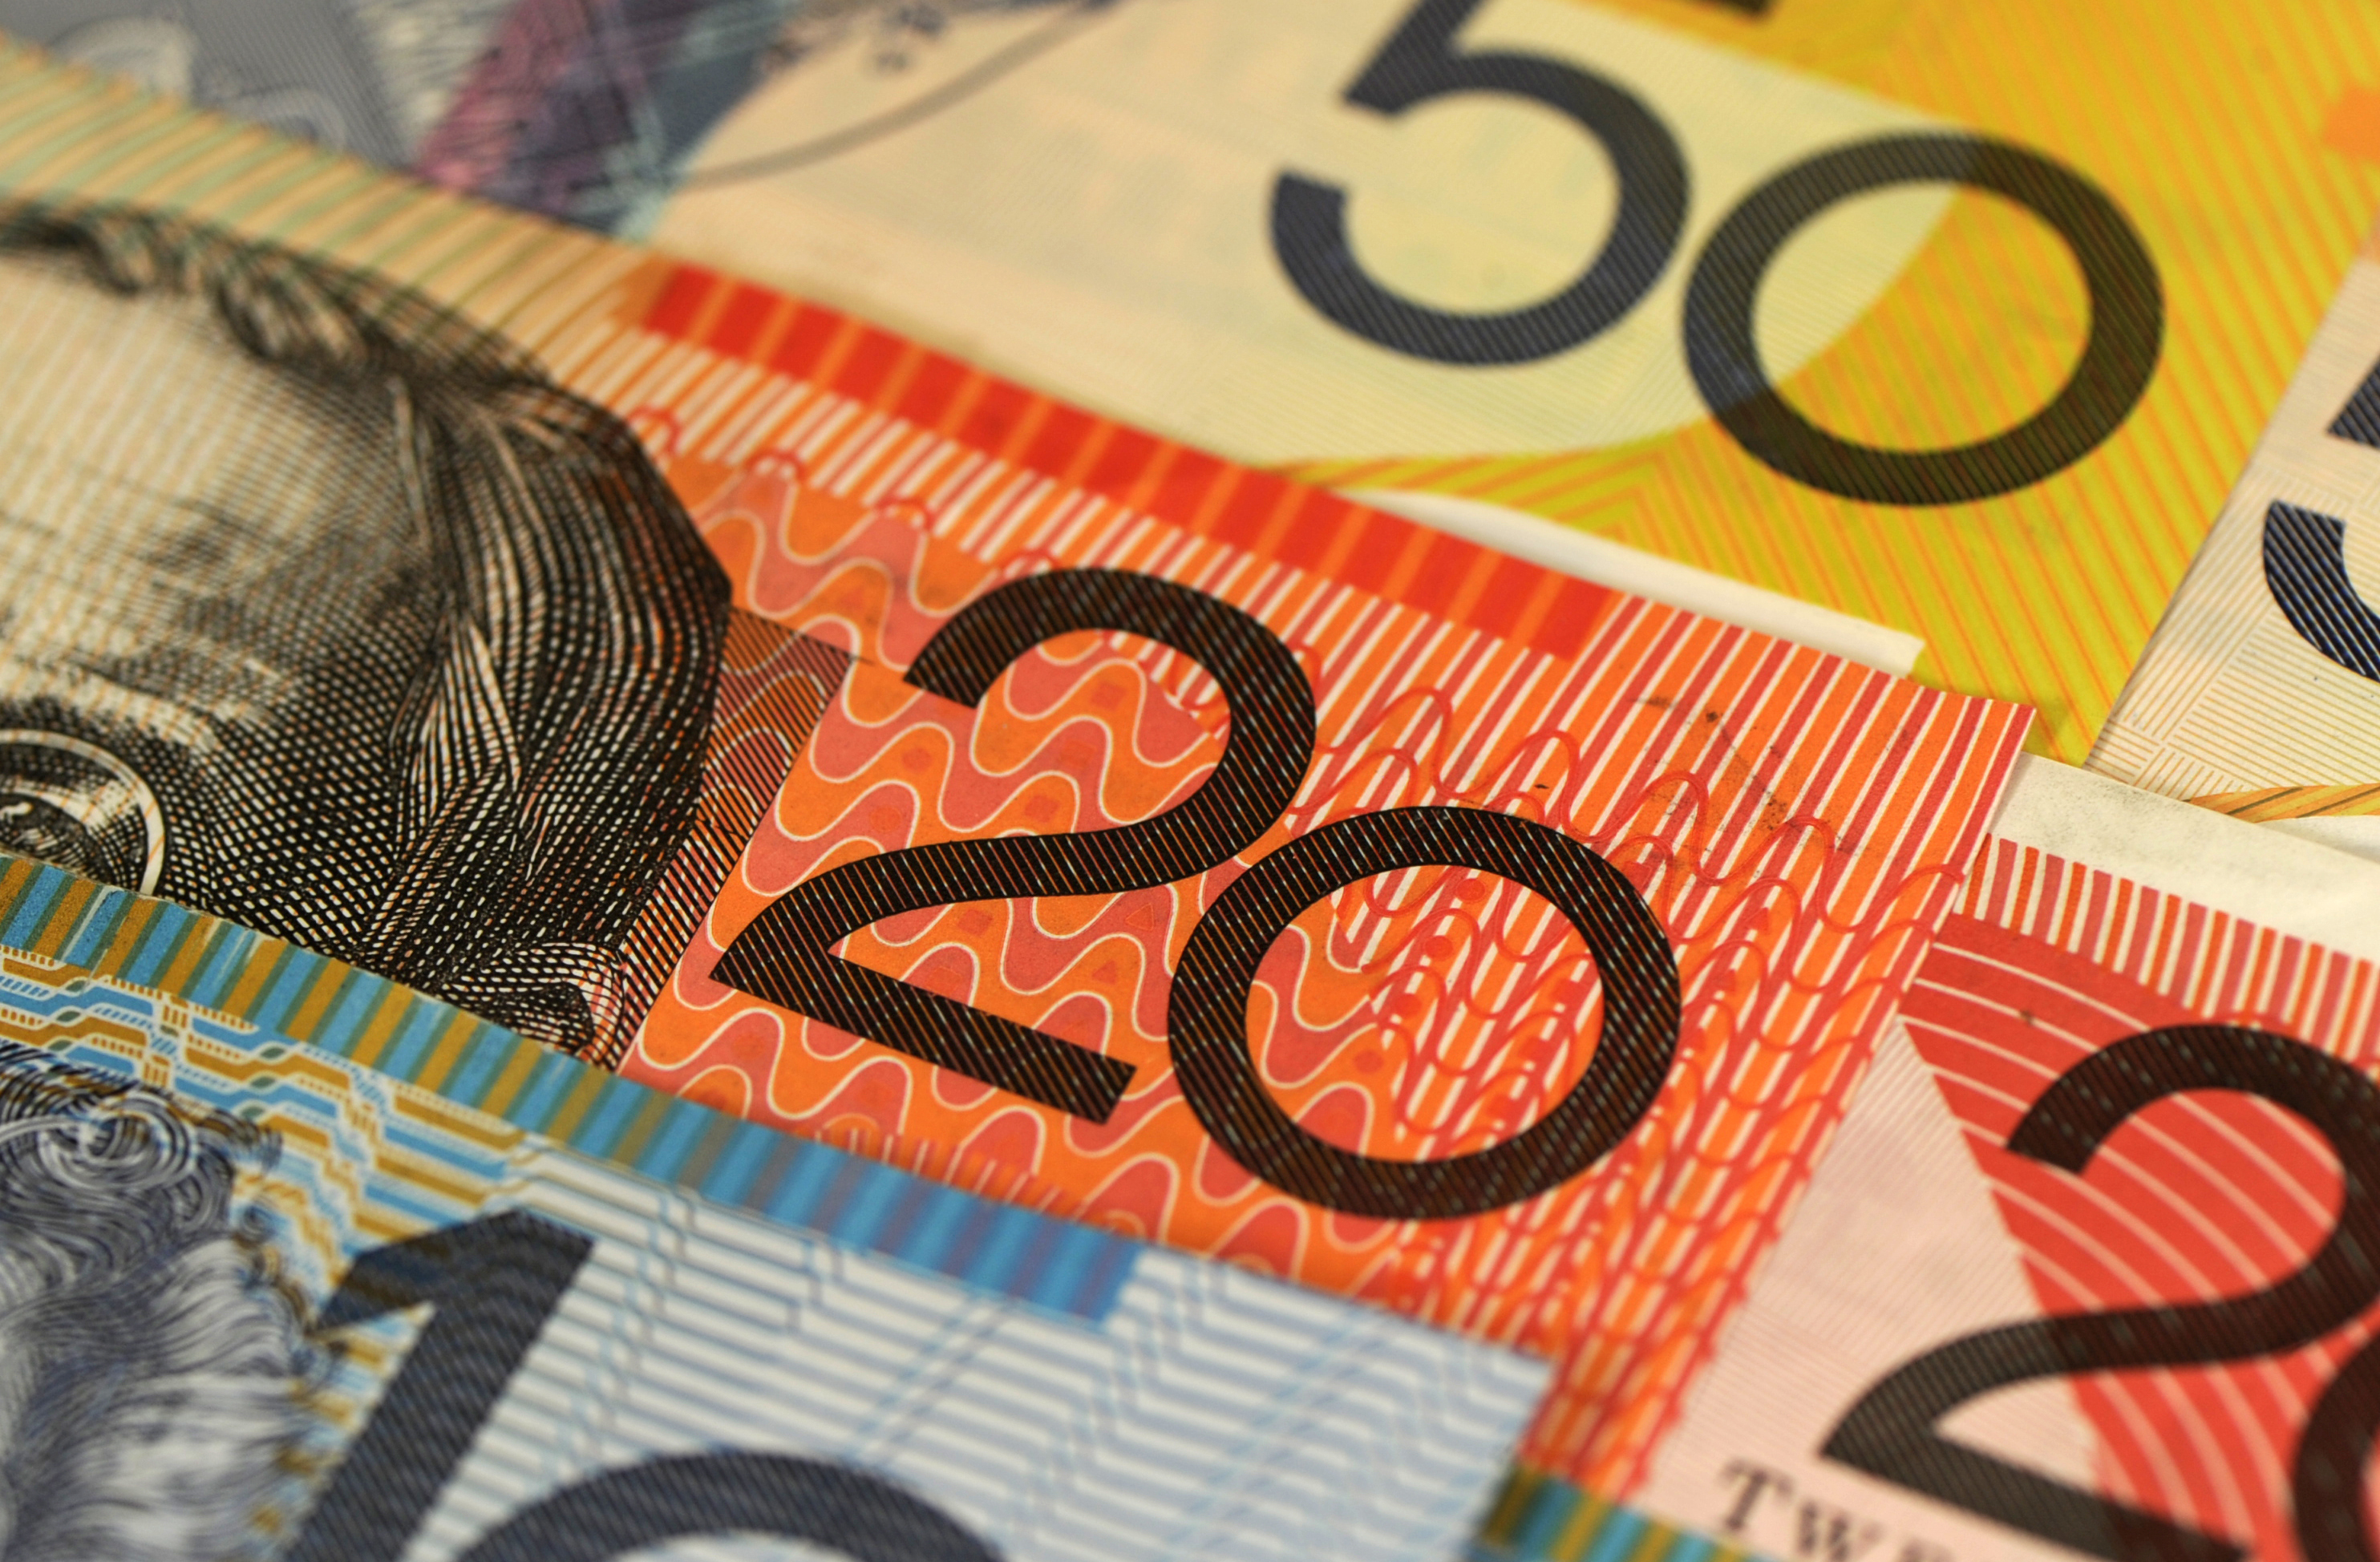 Australians have 'lost' $17.5b in super